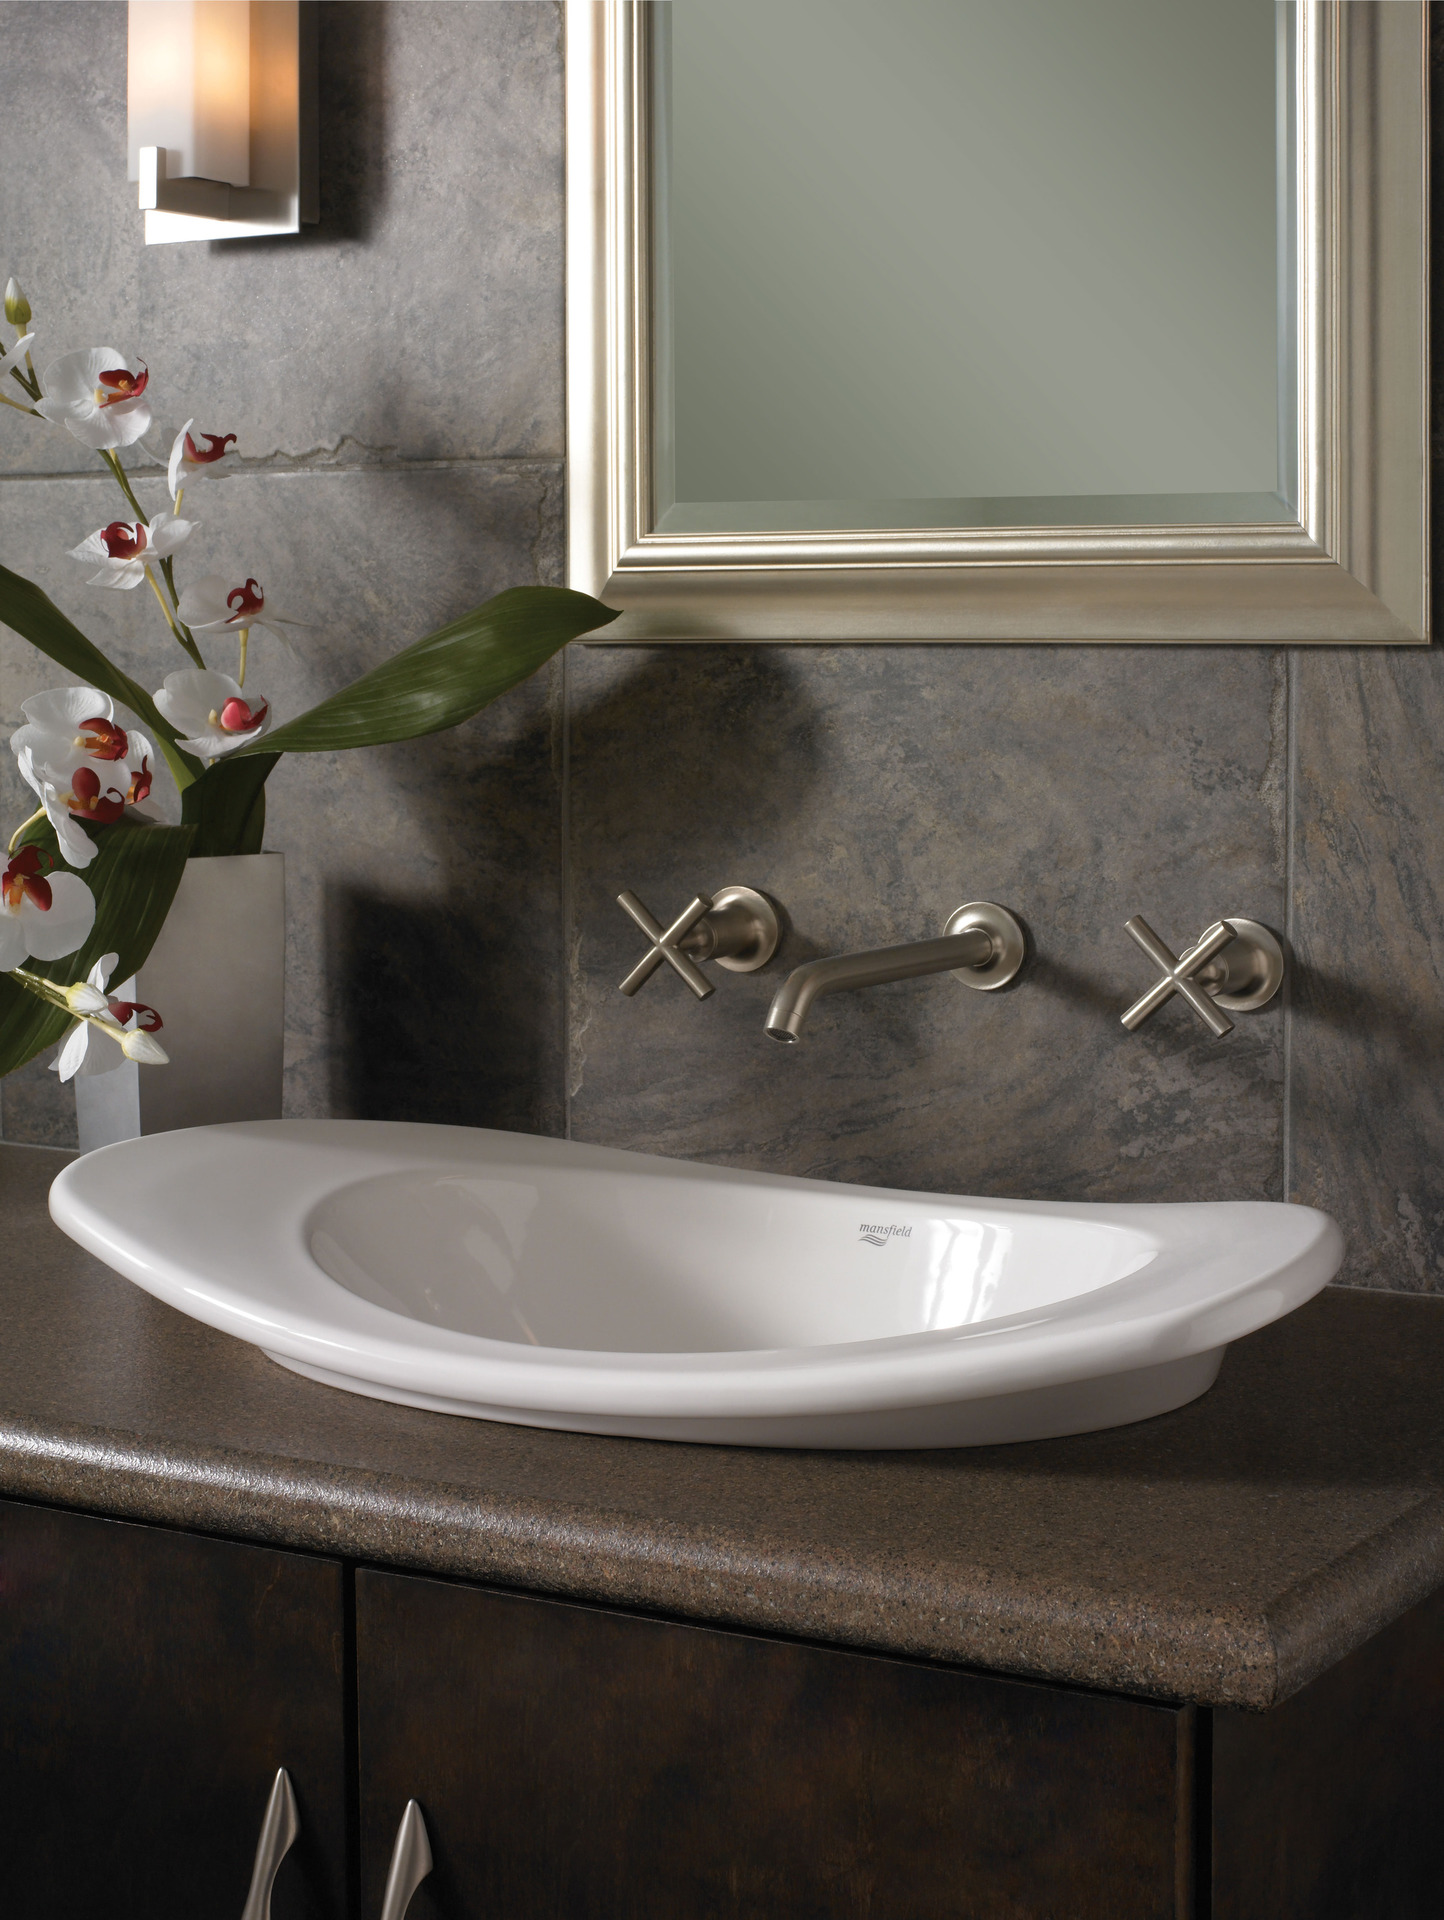 Good To Make A Distinct Statement In A Bathroom, The Reo Vessel Lav Canu0027t Be  Surpassed. With Arched Sides And A Deep Oval Sink, Reo Lavs Have A  Personality All ...